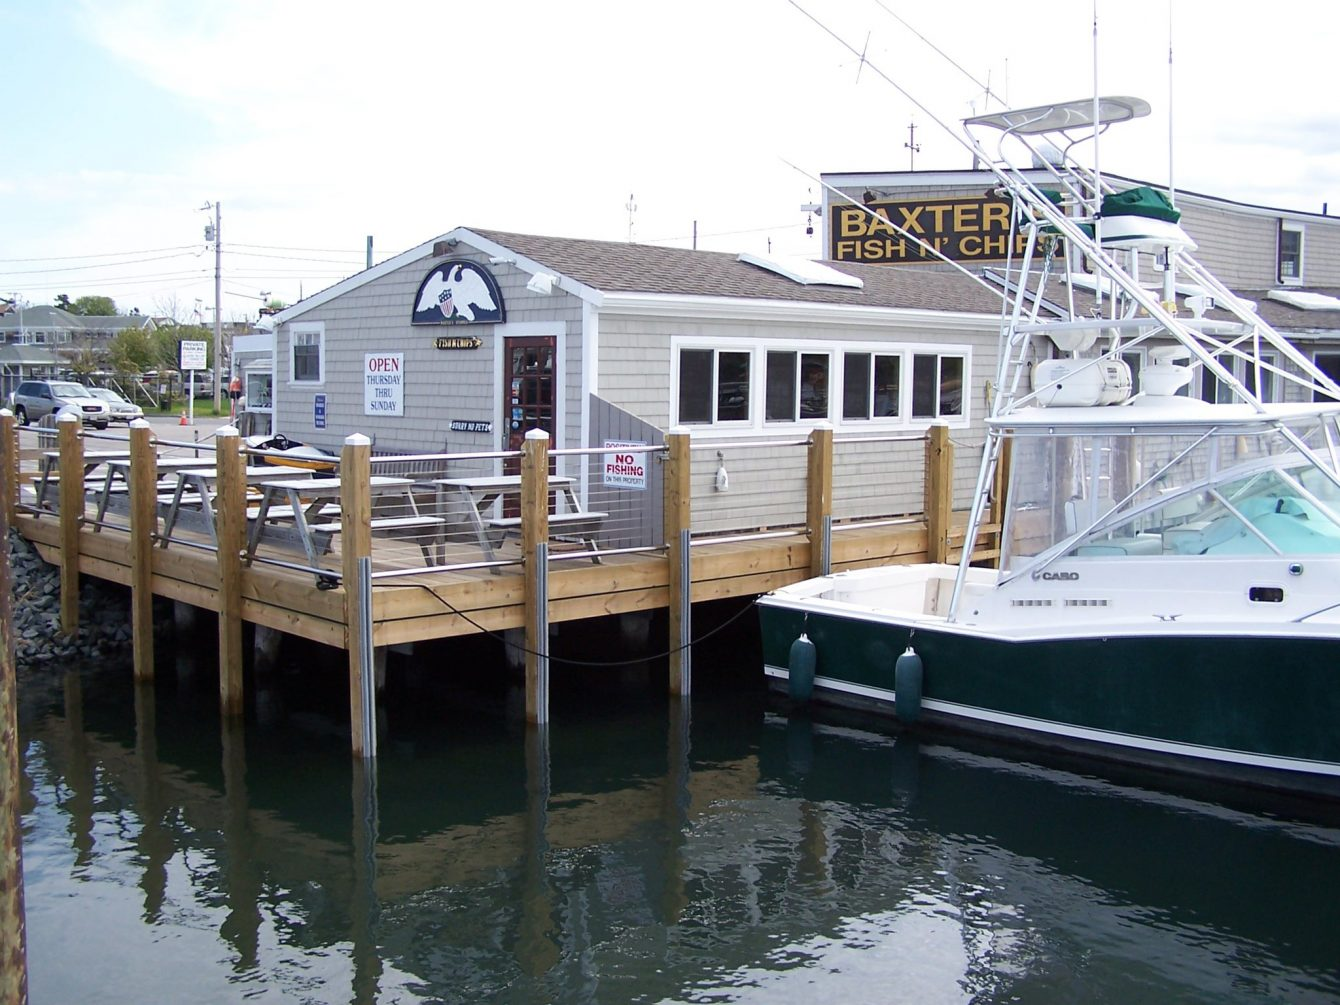 Baxter s Fish  n  Chips   Baxter s Boathouse Hyannis MA 02601. Seafood Restaurants Hyannis Ma. Home Design Ideas